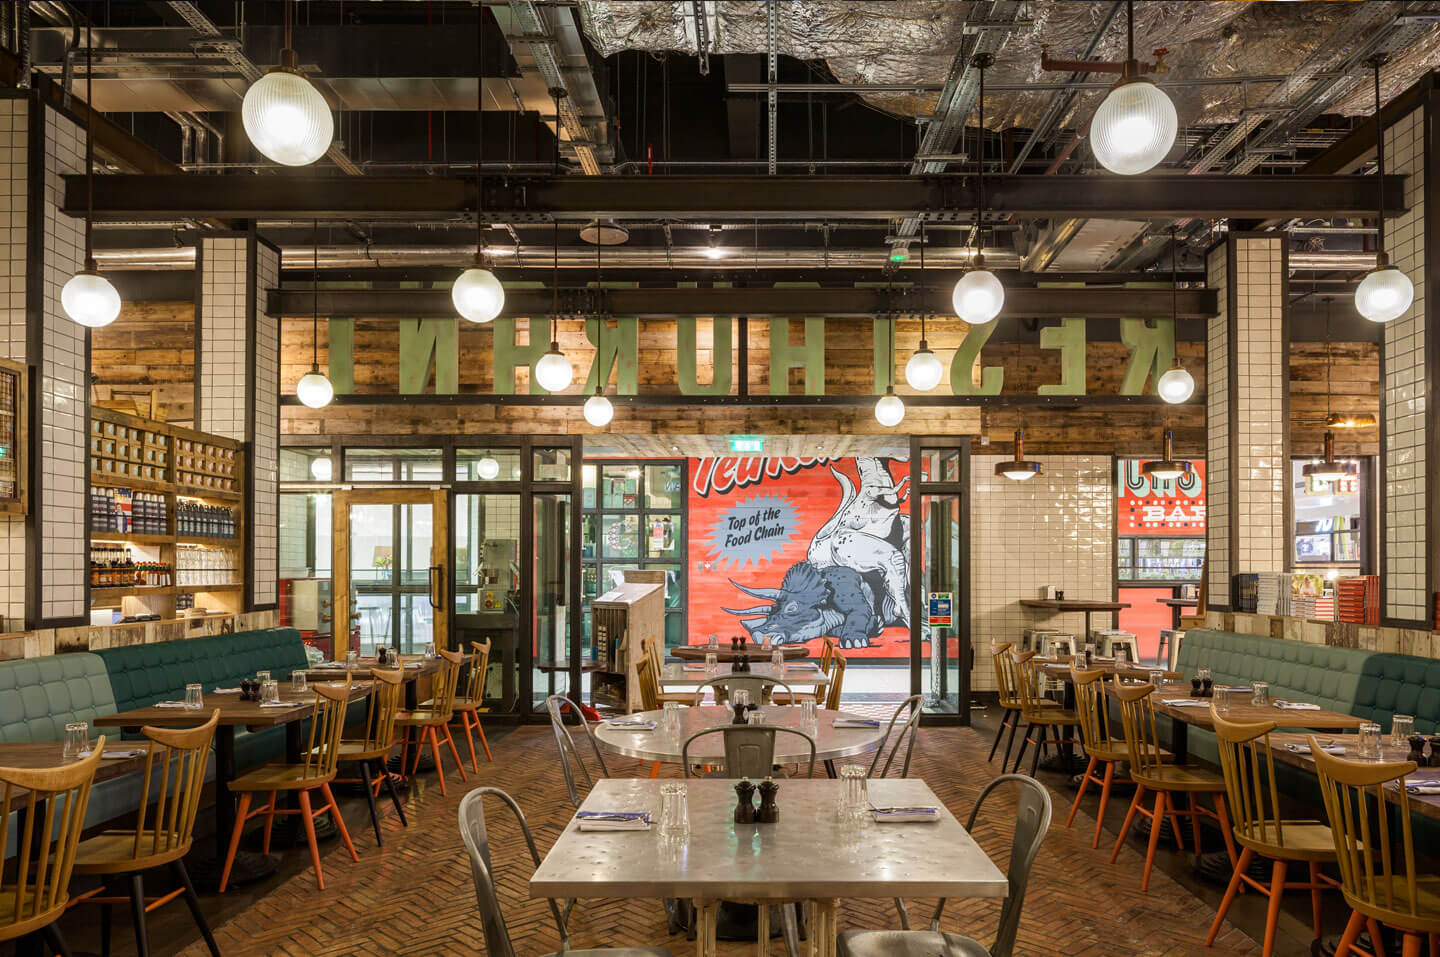 Jamie Oliver Enterprises Is To Close Six Of S Italian Restaurants After A Challenging Trading Period Following The Brexit Referendum